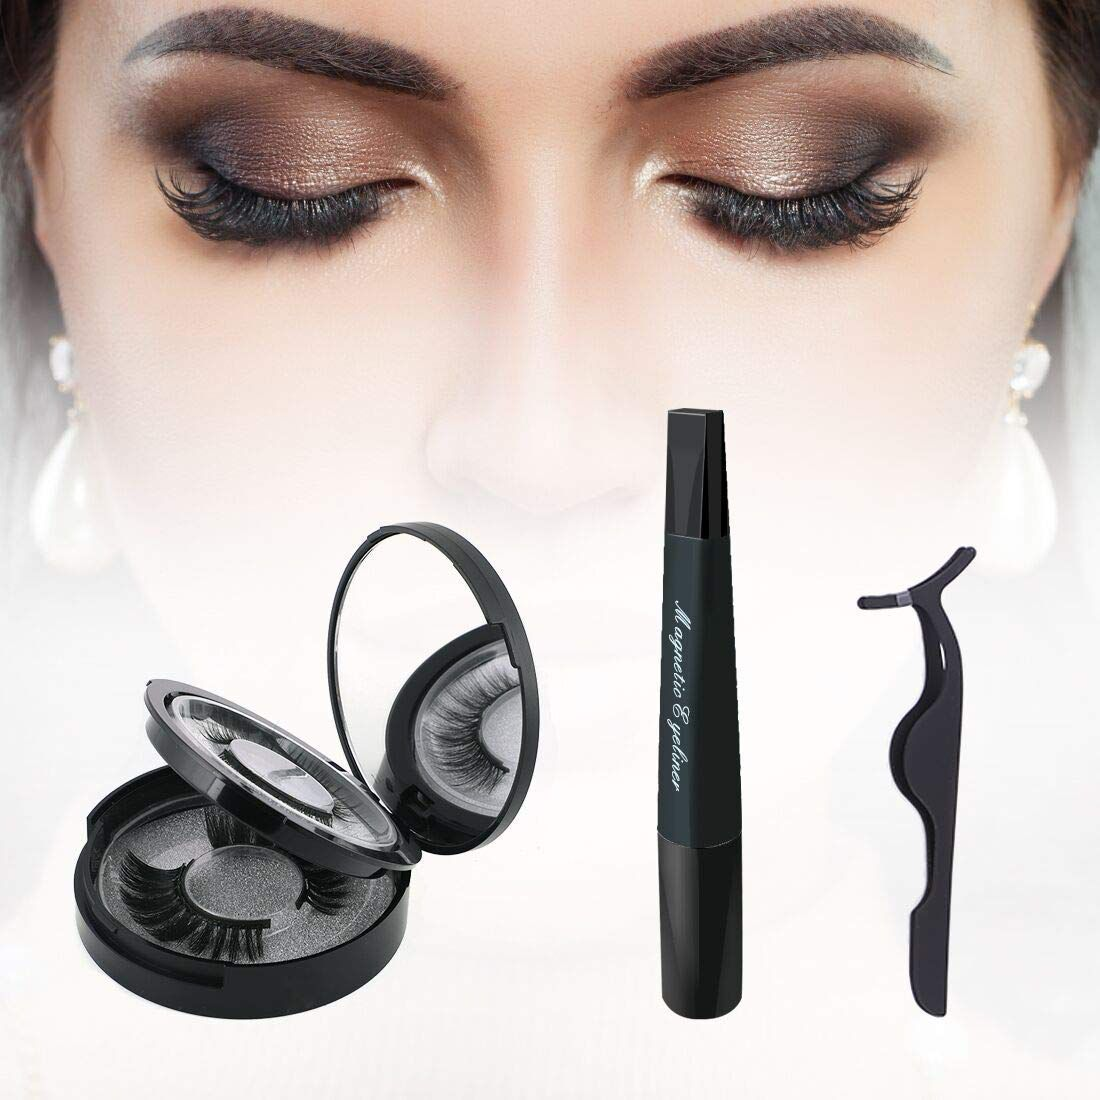 Magnetic Eyeliner, Magnetic Wimpern Set, Falschen Wimpern Magnetic